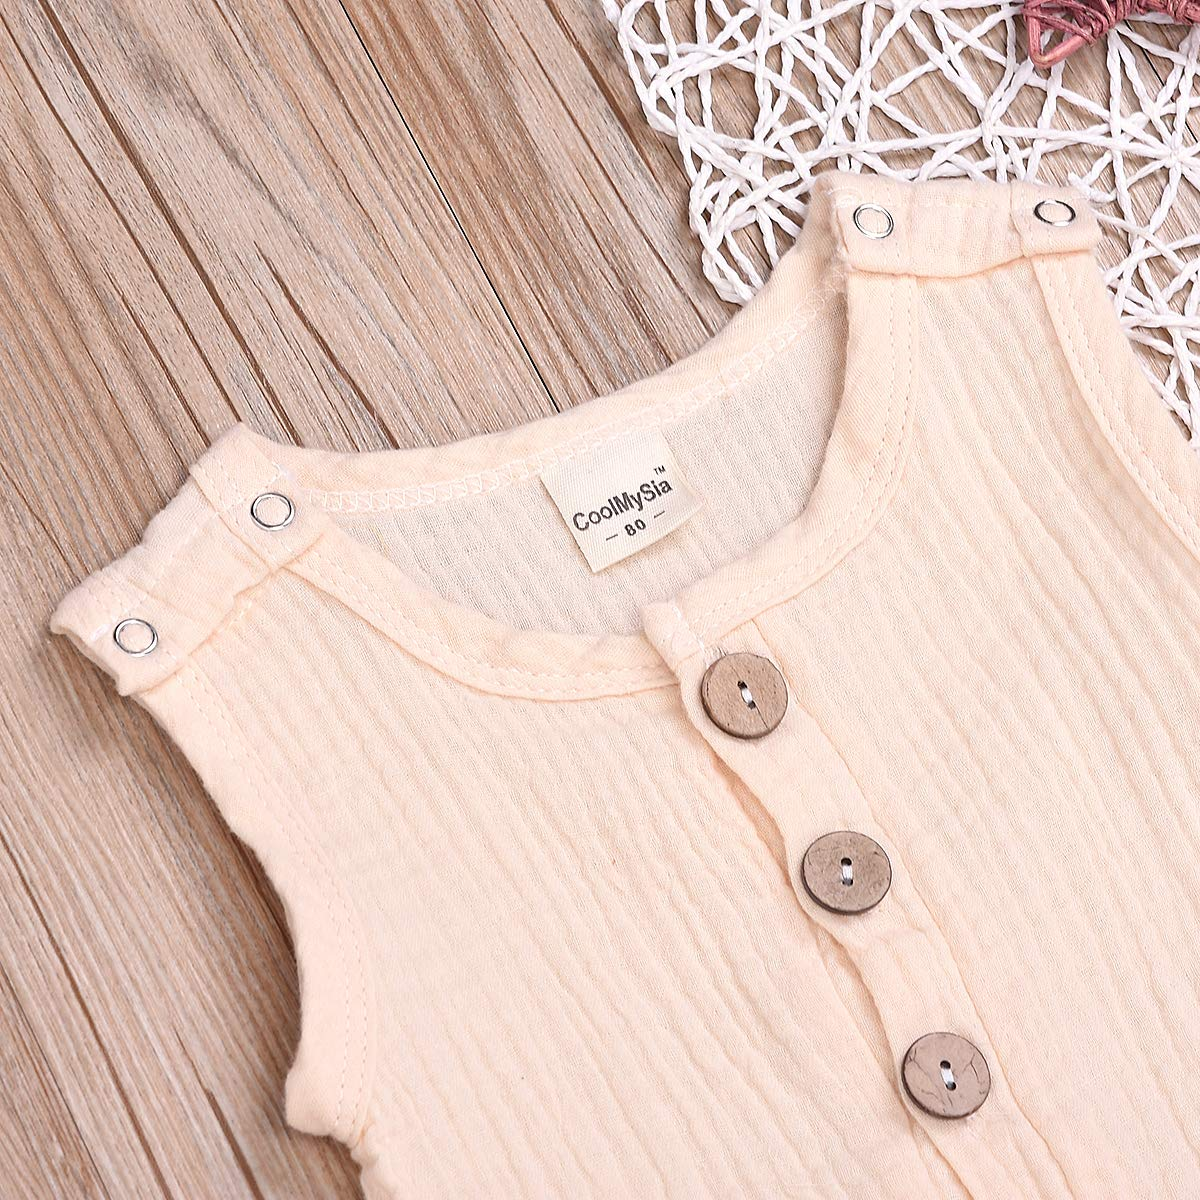 Mini honey Infant Toddler Baby Girls Boys Navy//Brown Button up Sleeveless Romper Jumpsuit Shorts Summer Outfit Clothes